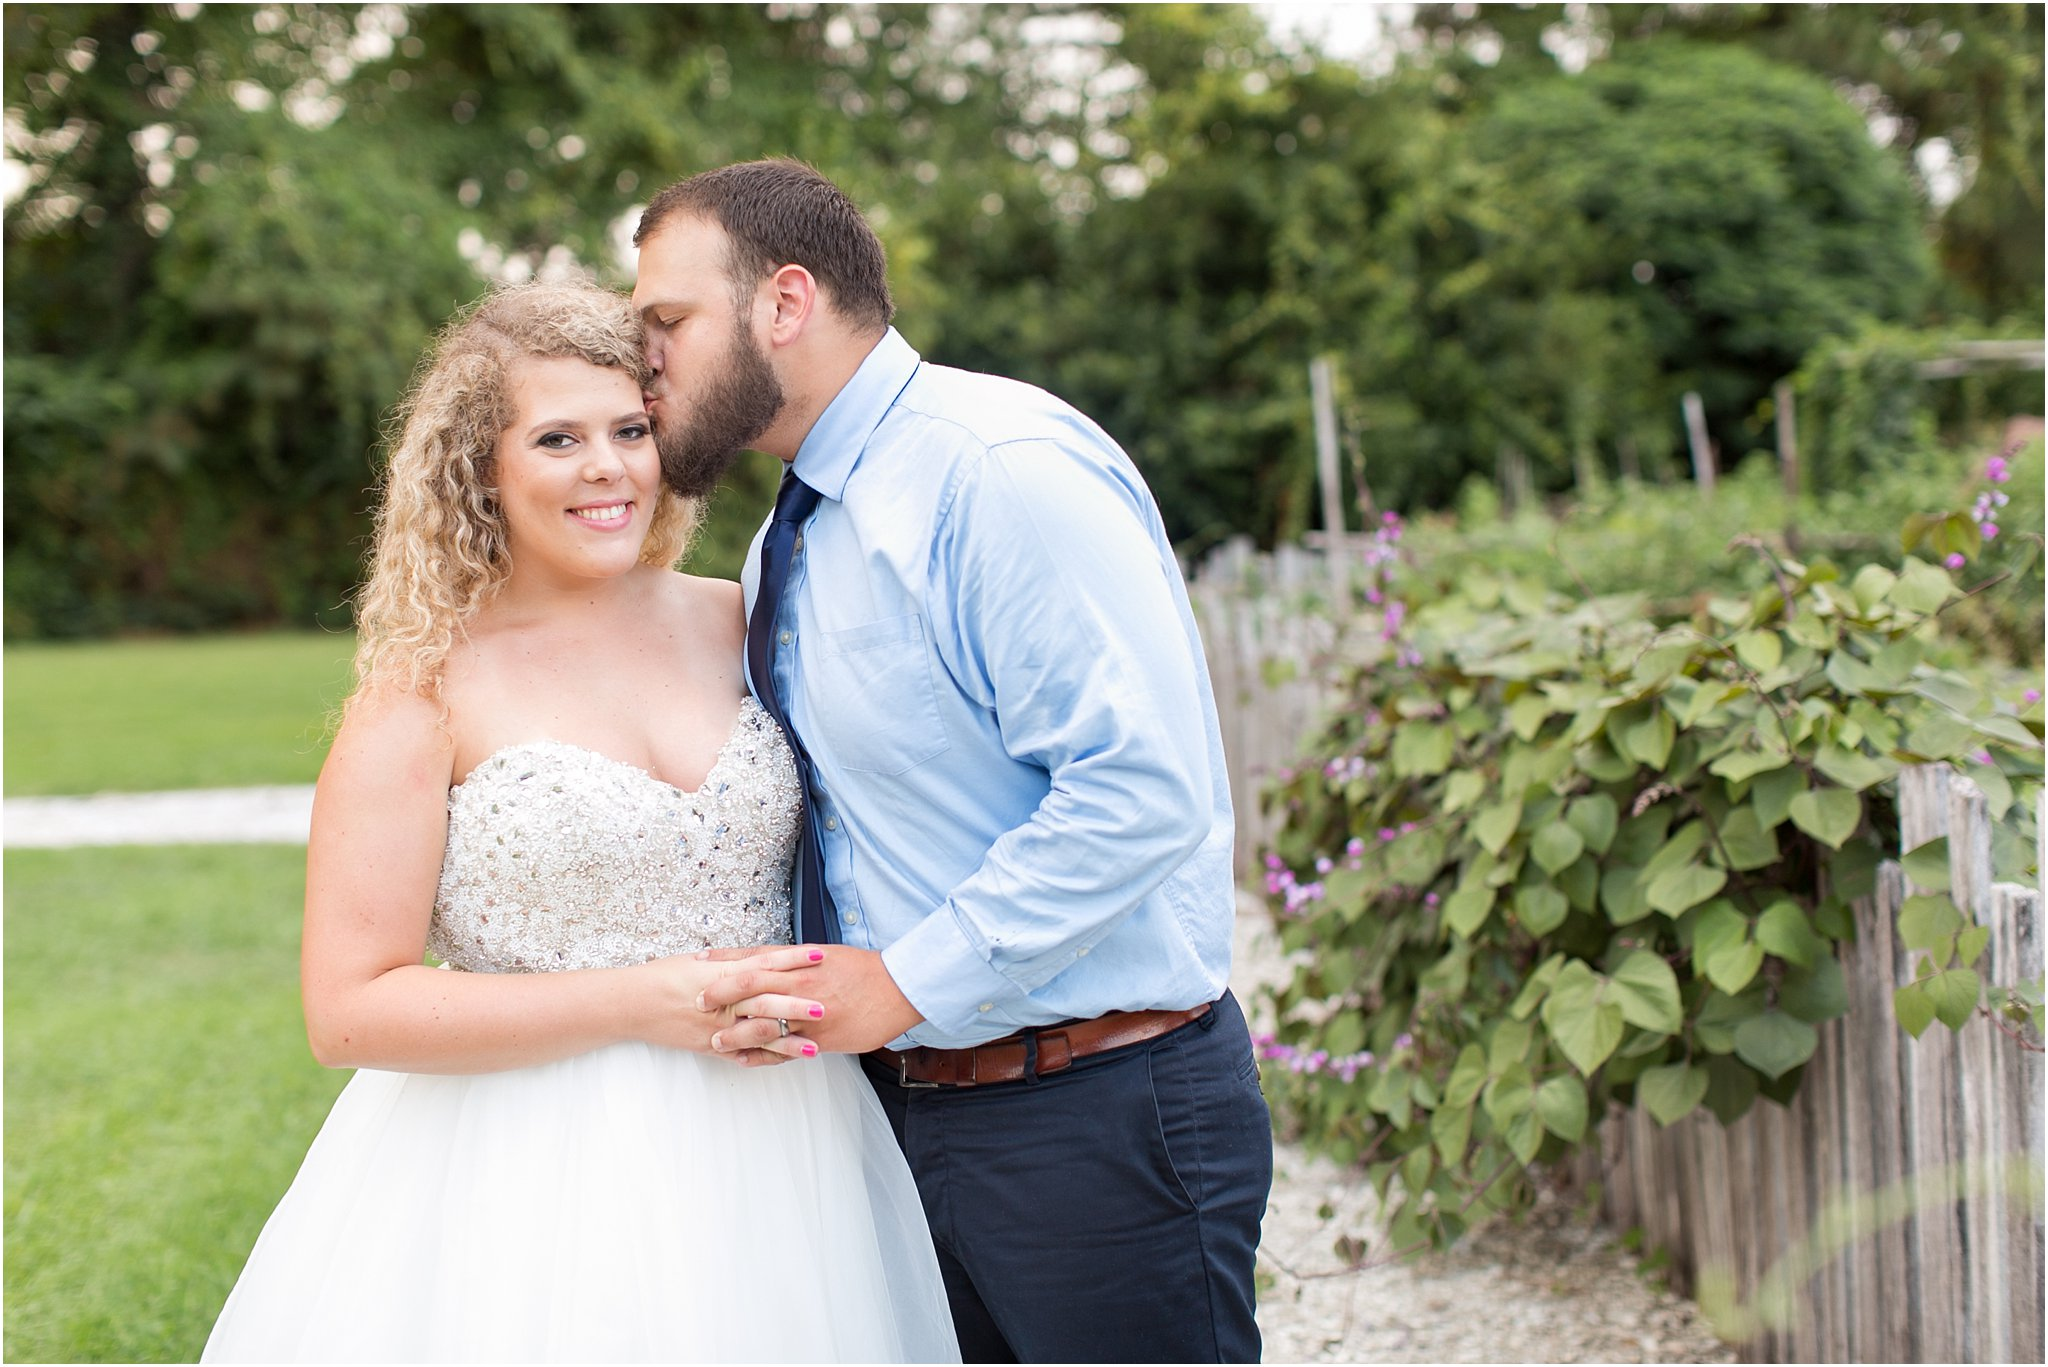 jessica_ryan_photography_virginia_virginia_beach_francis_land_house_portraits_anniversary_portraits_bride_and_groom_beloved_historical_home_wedding_2701